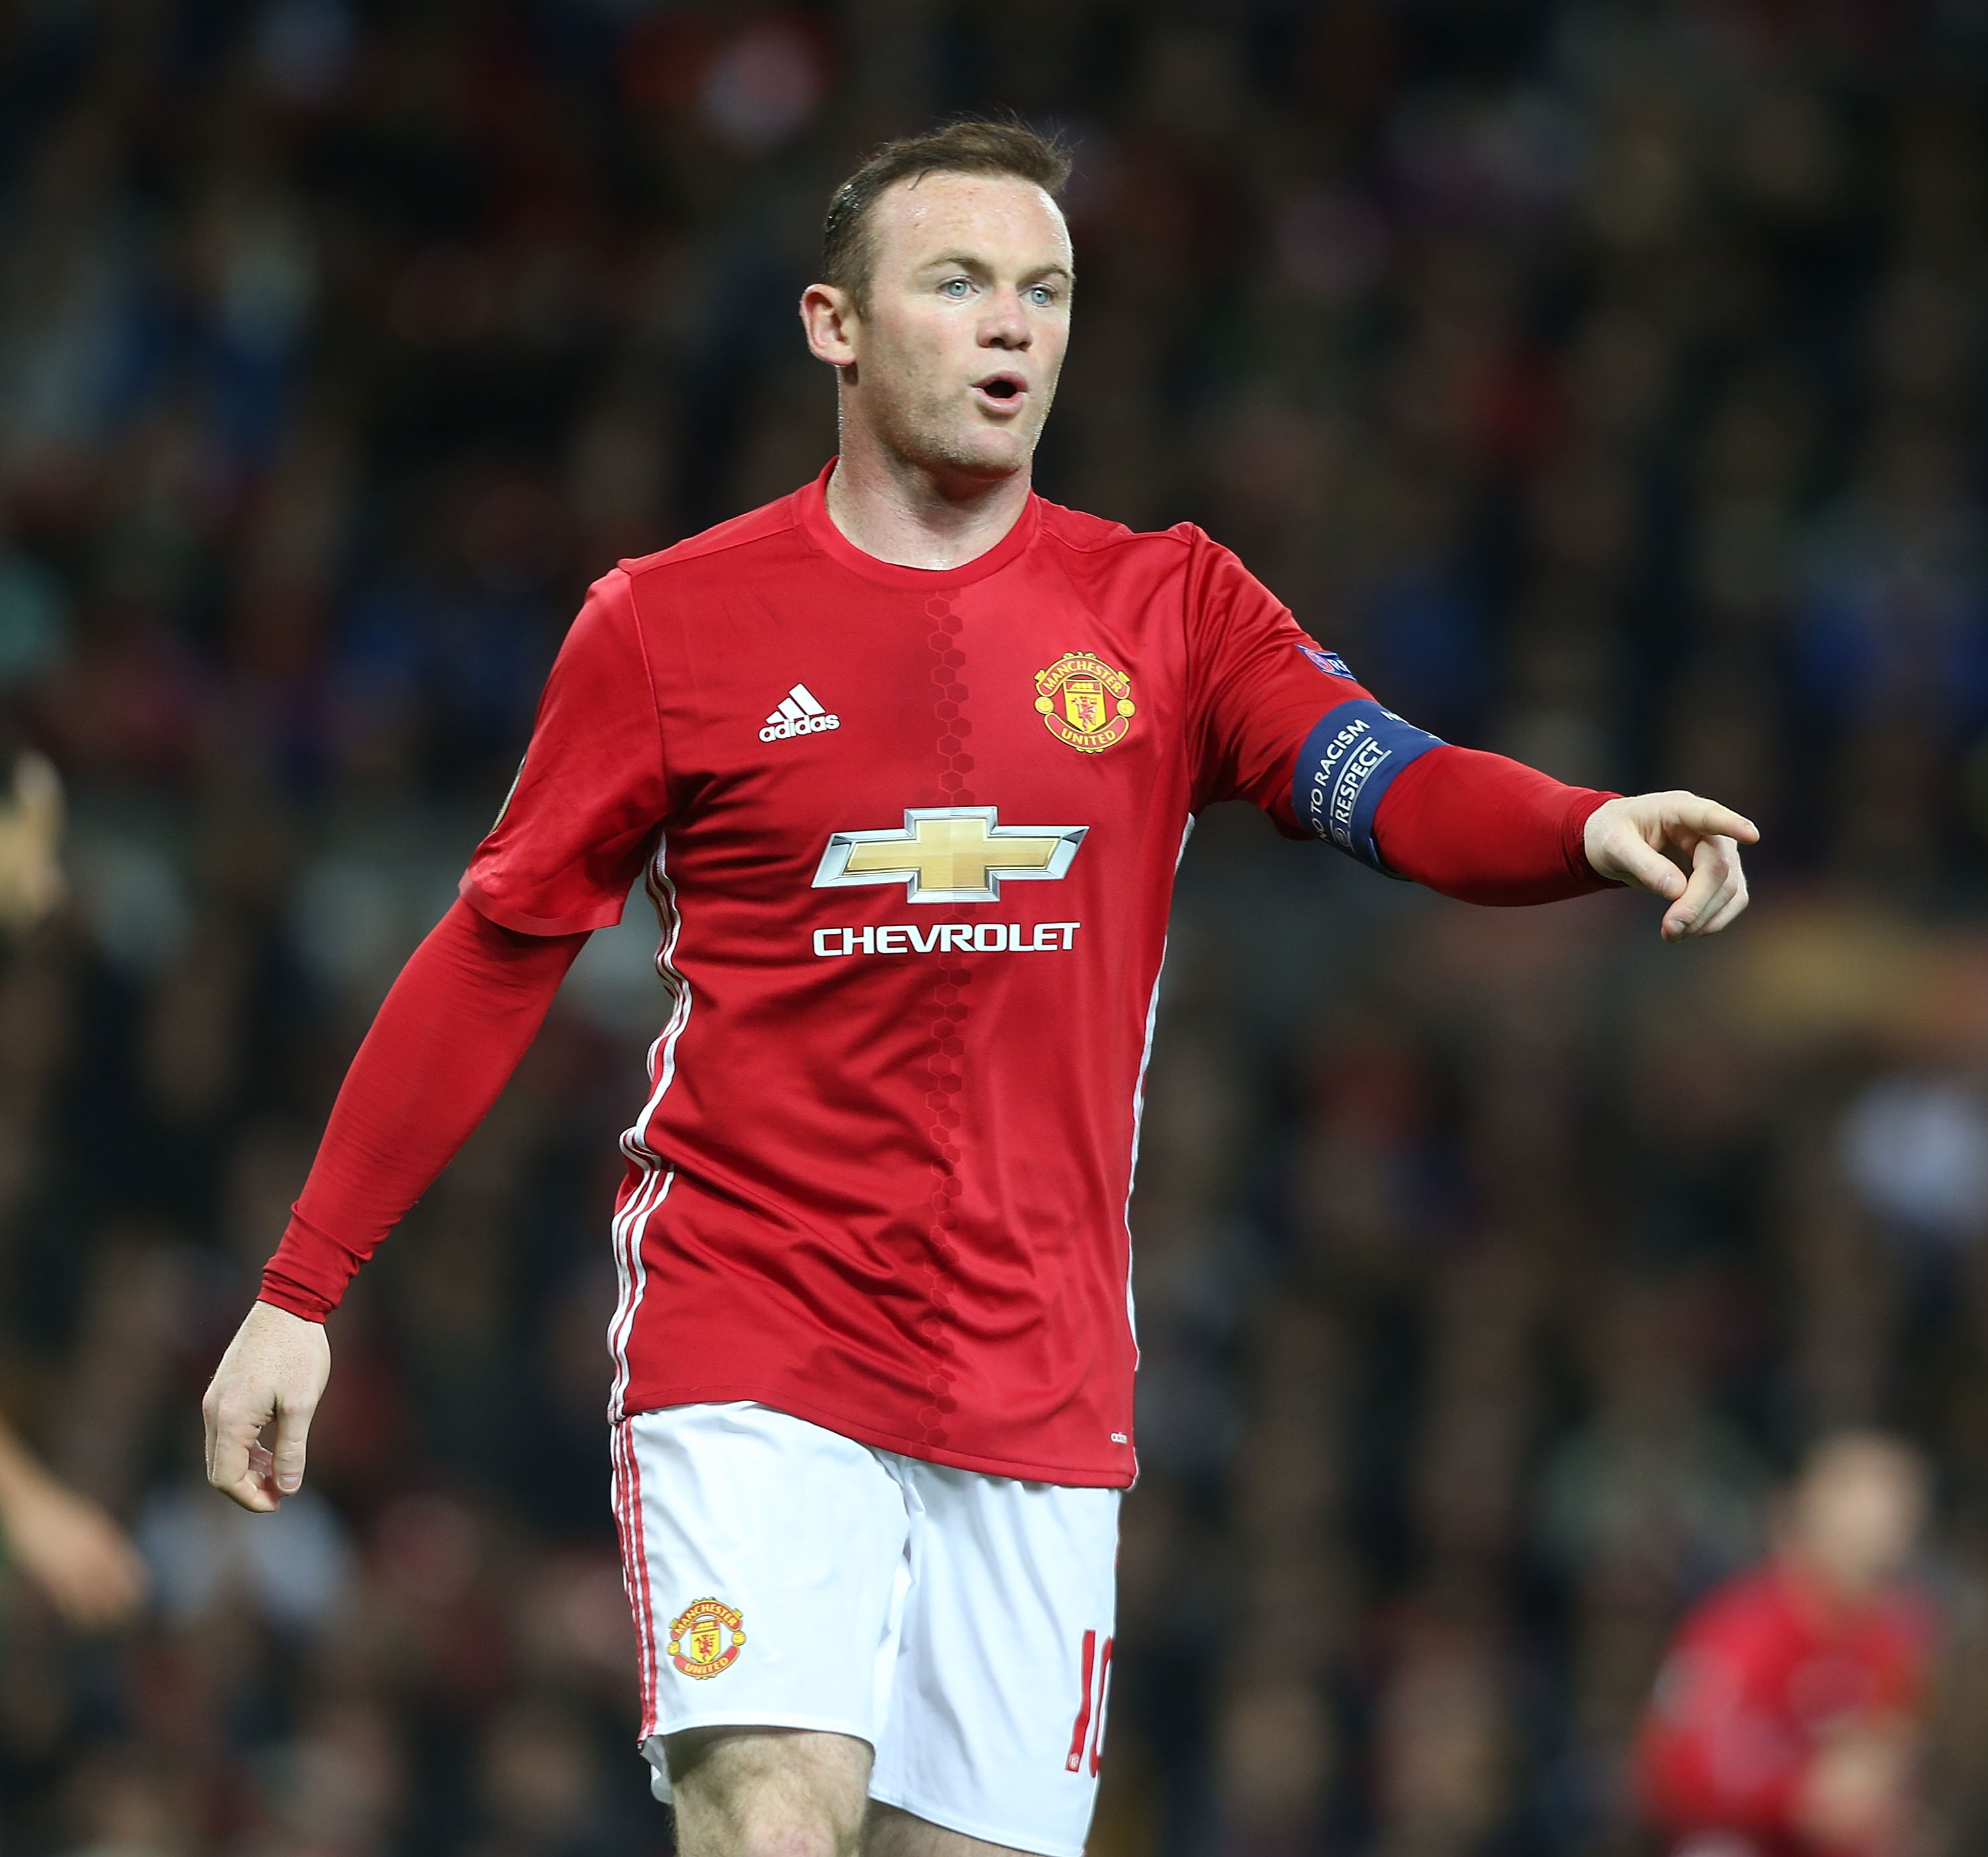 Wayne Rooney could return to Everton from Manchester United says former teammate